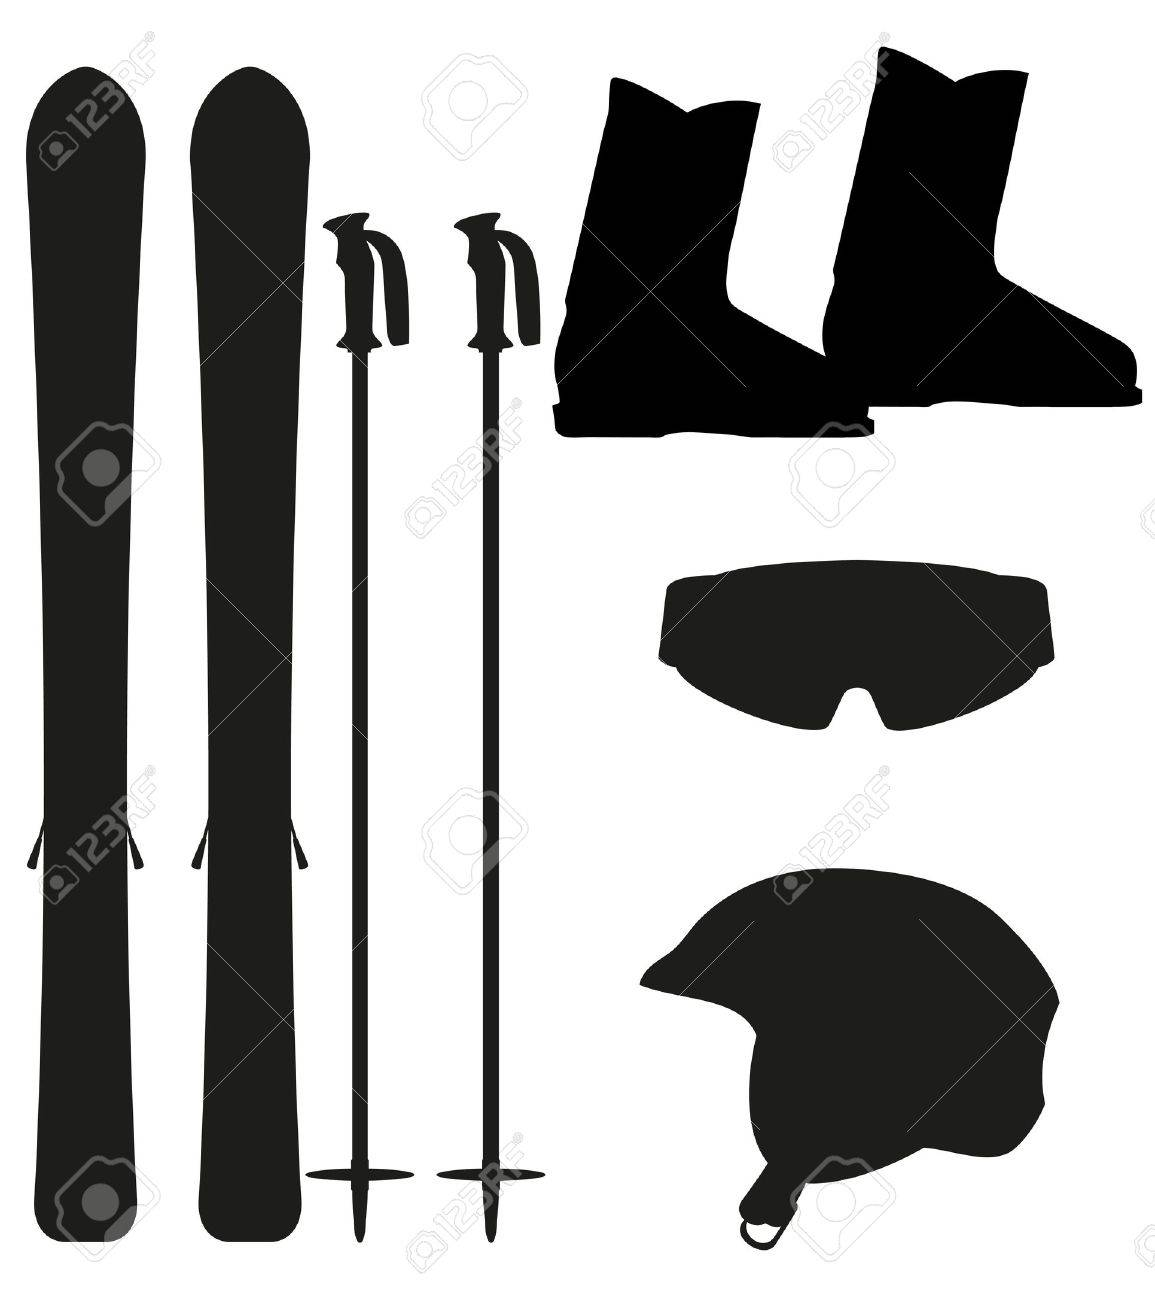 ski equipment icon set silhouette vector illustration isolated on white background Stock Photo - 16681950